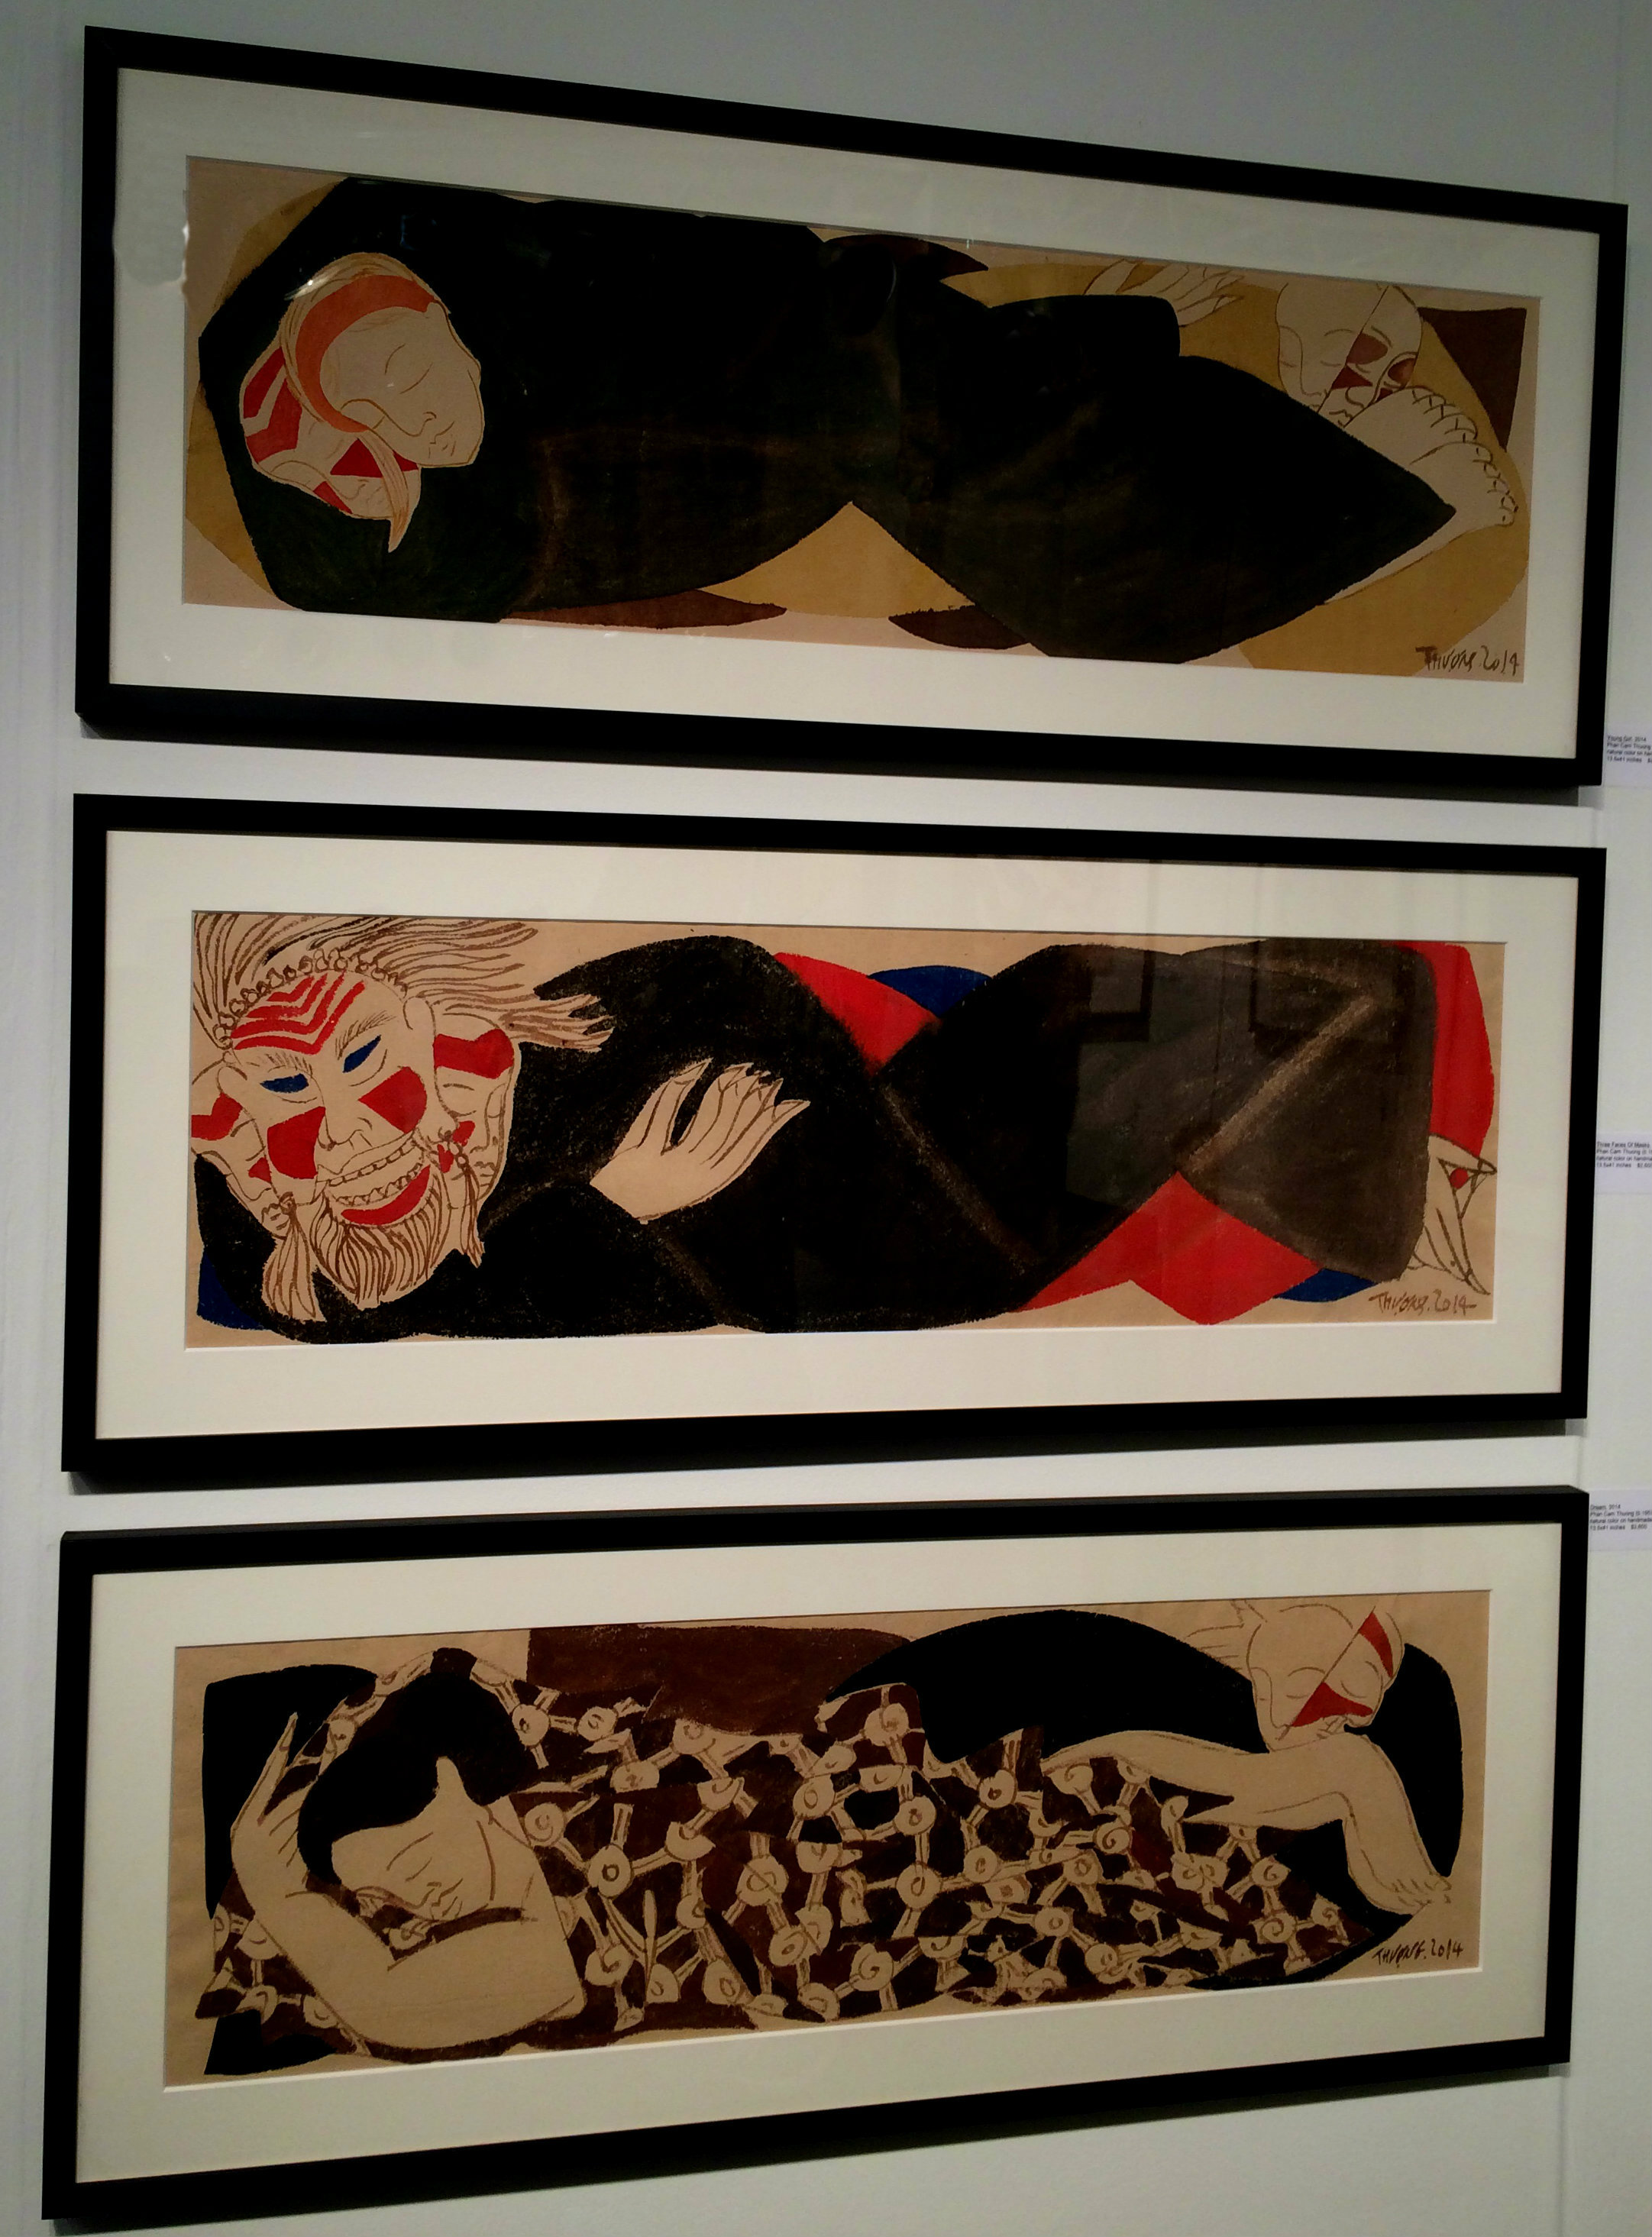 Young Girl, Three Faces of Masks, and Dream by Phan Cam Thuong